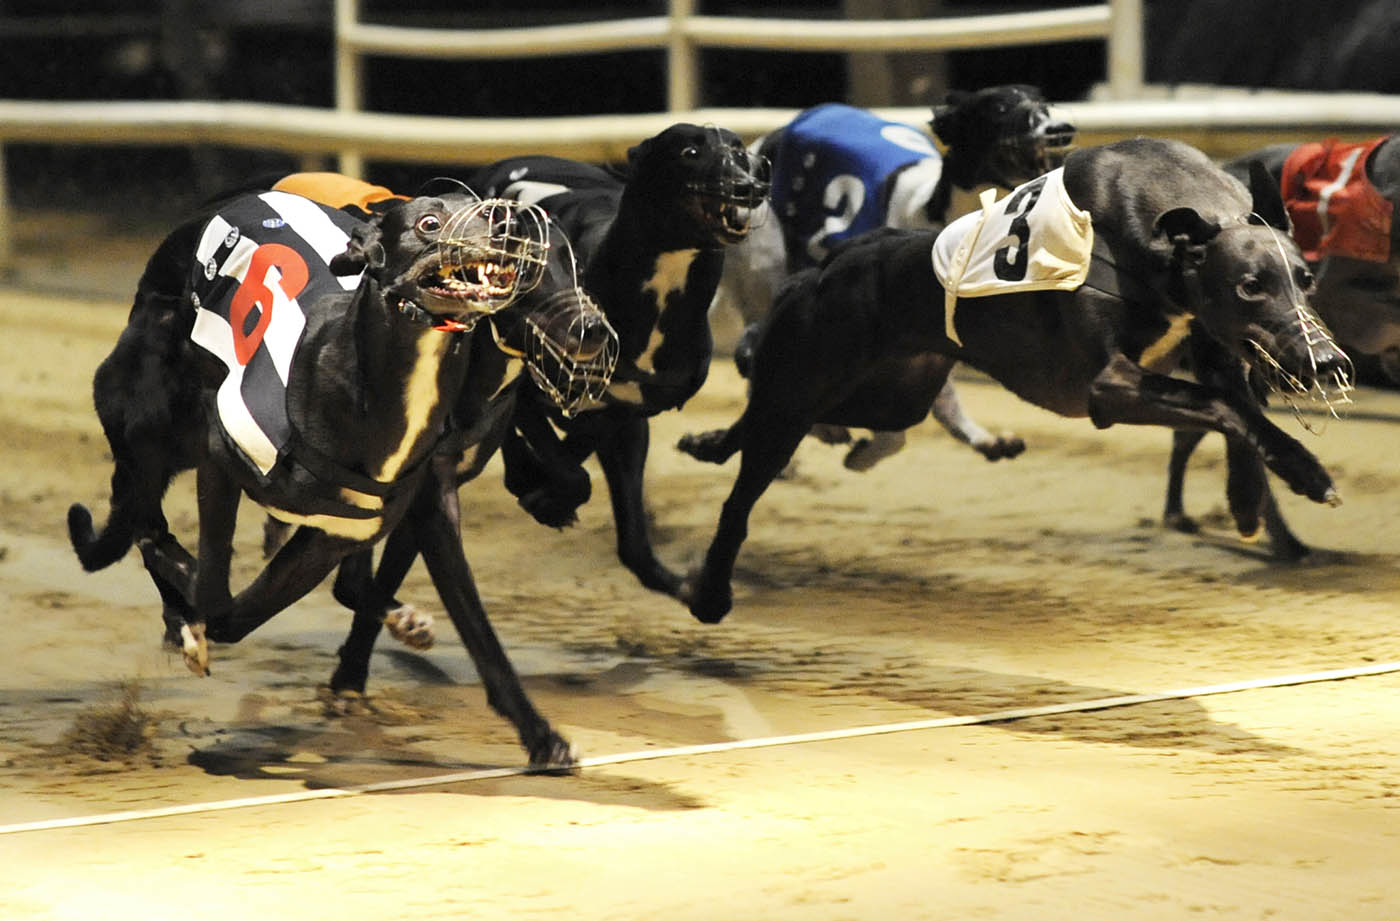 greyhound racing betting